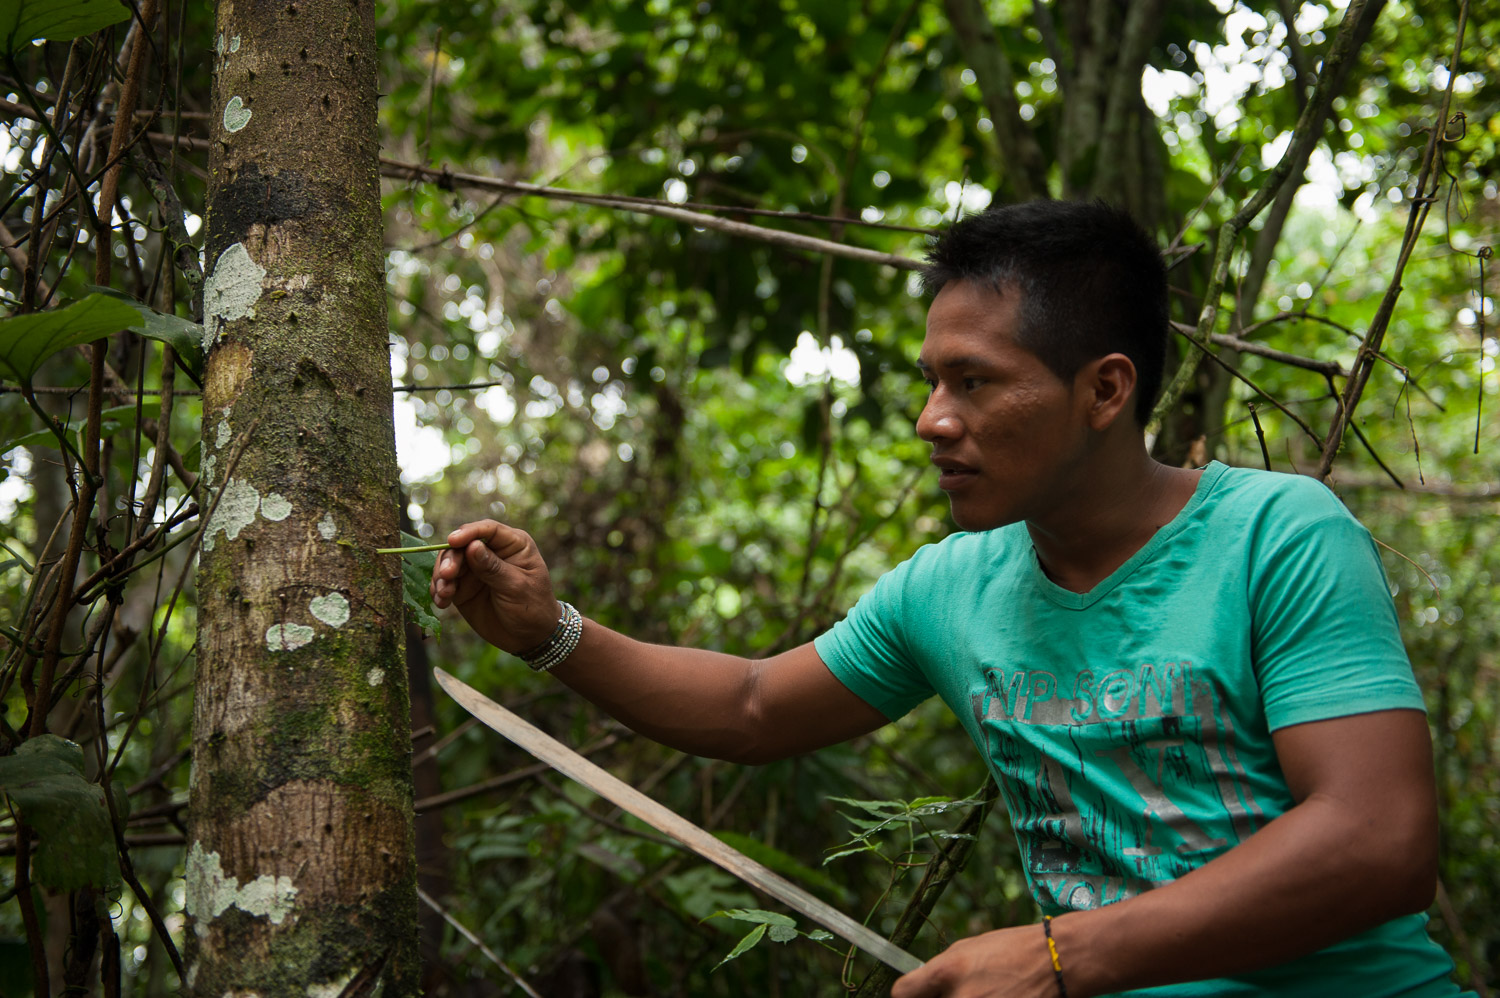 Tapullima's son, Hernando, leads eco-tours through the protected rain forest,showing how to extract the sap from a tree that serves as medicinal plant.